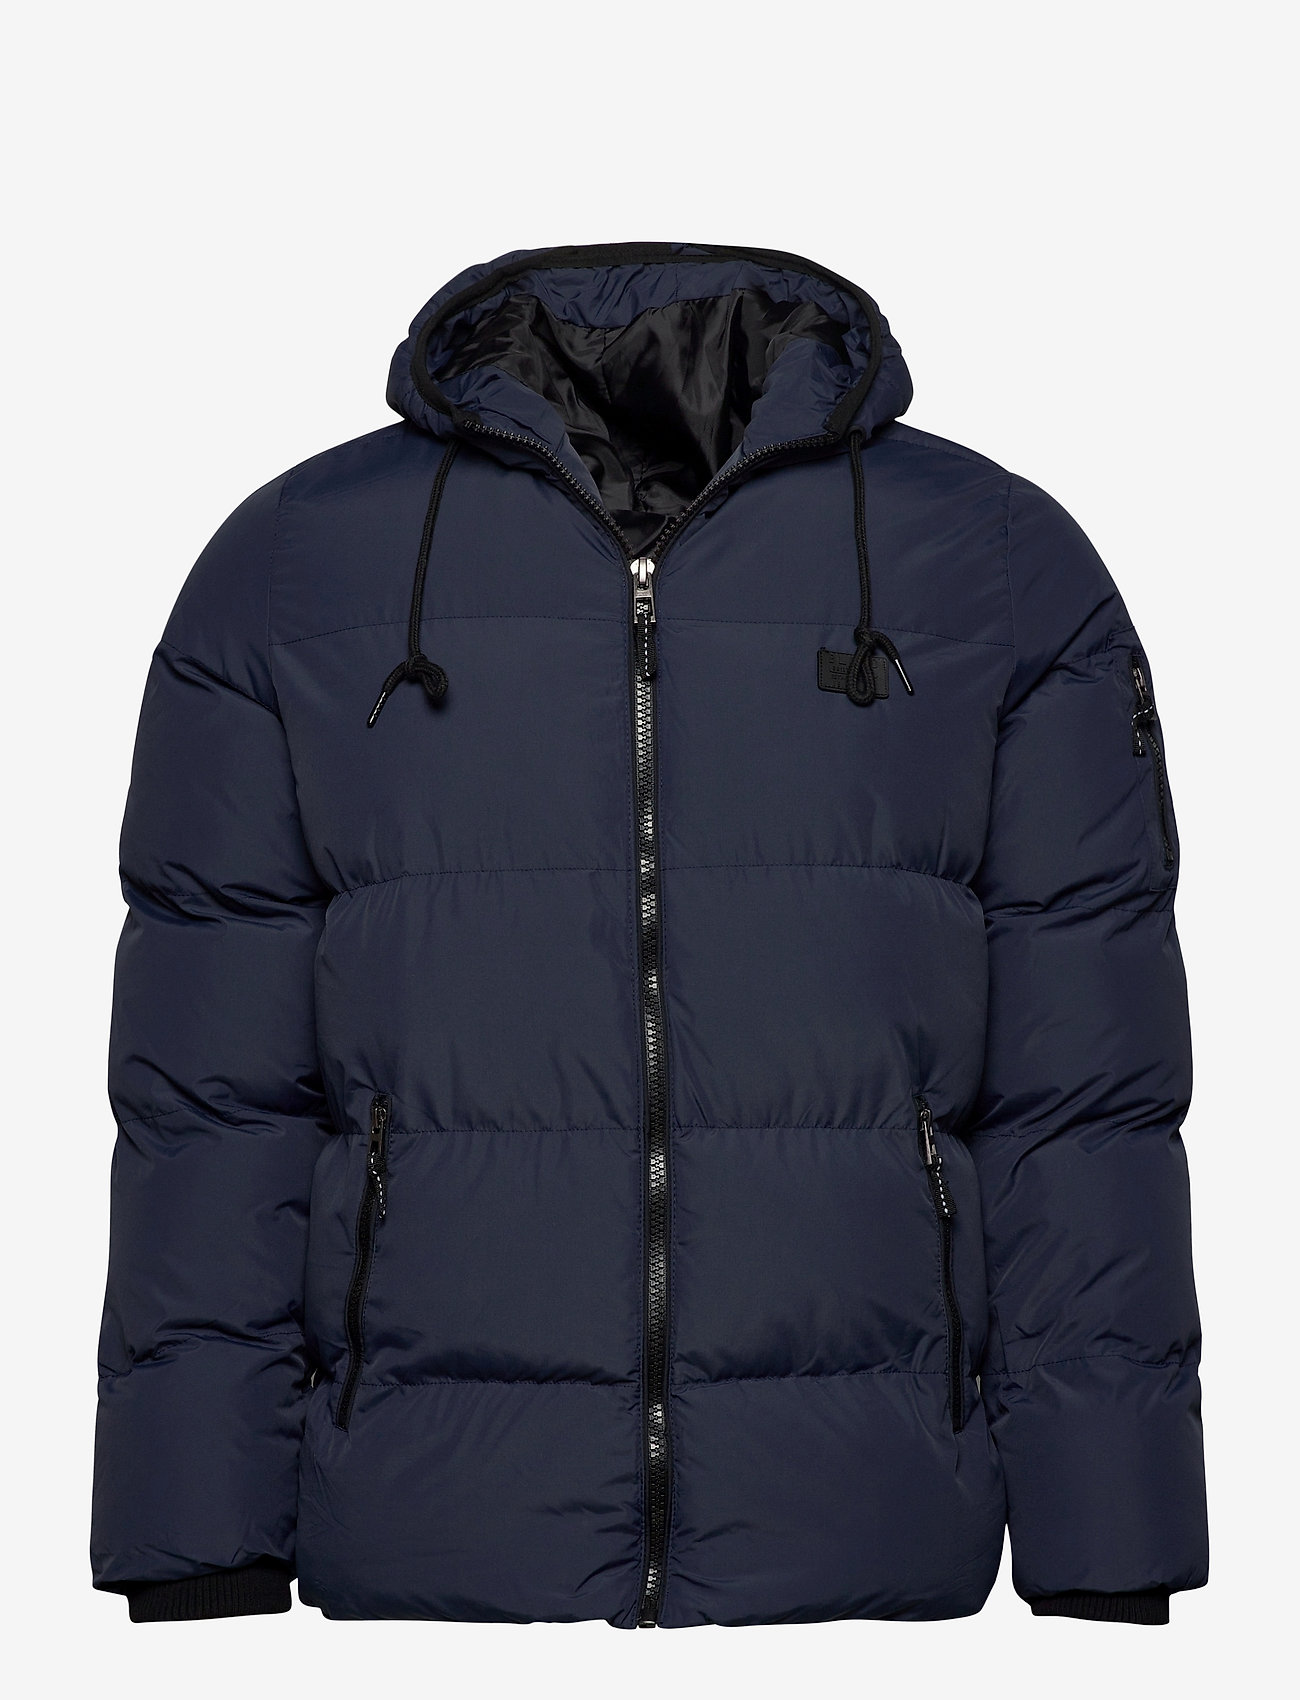 Blend - Outerwear - padded jackets - dark navy - 0